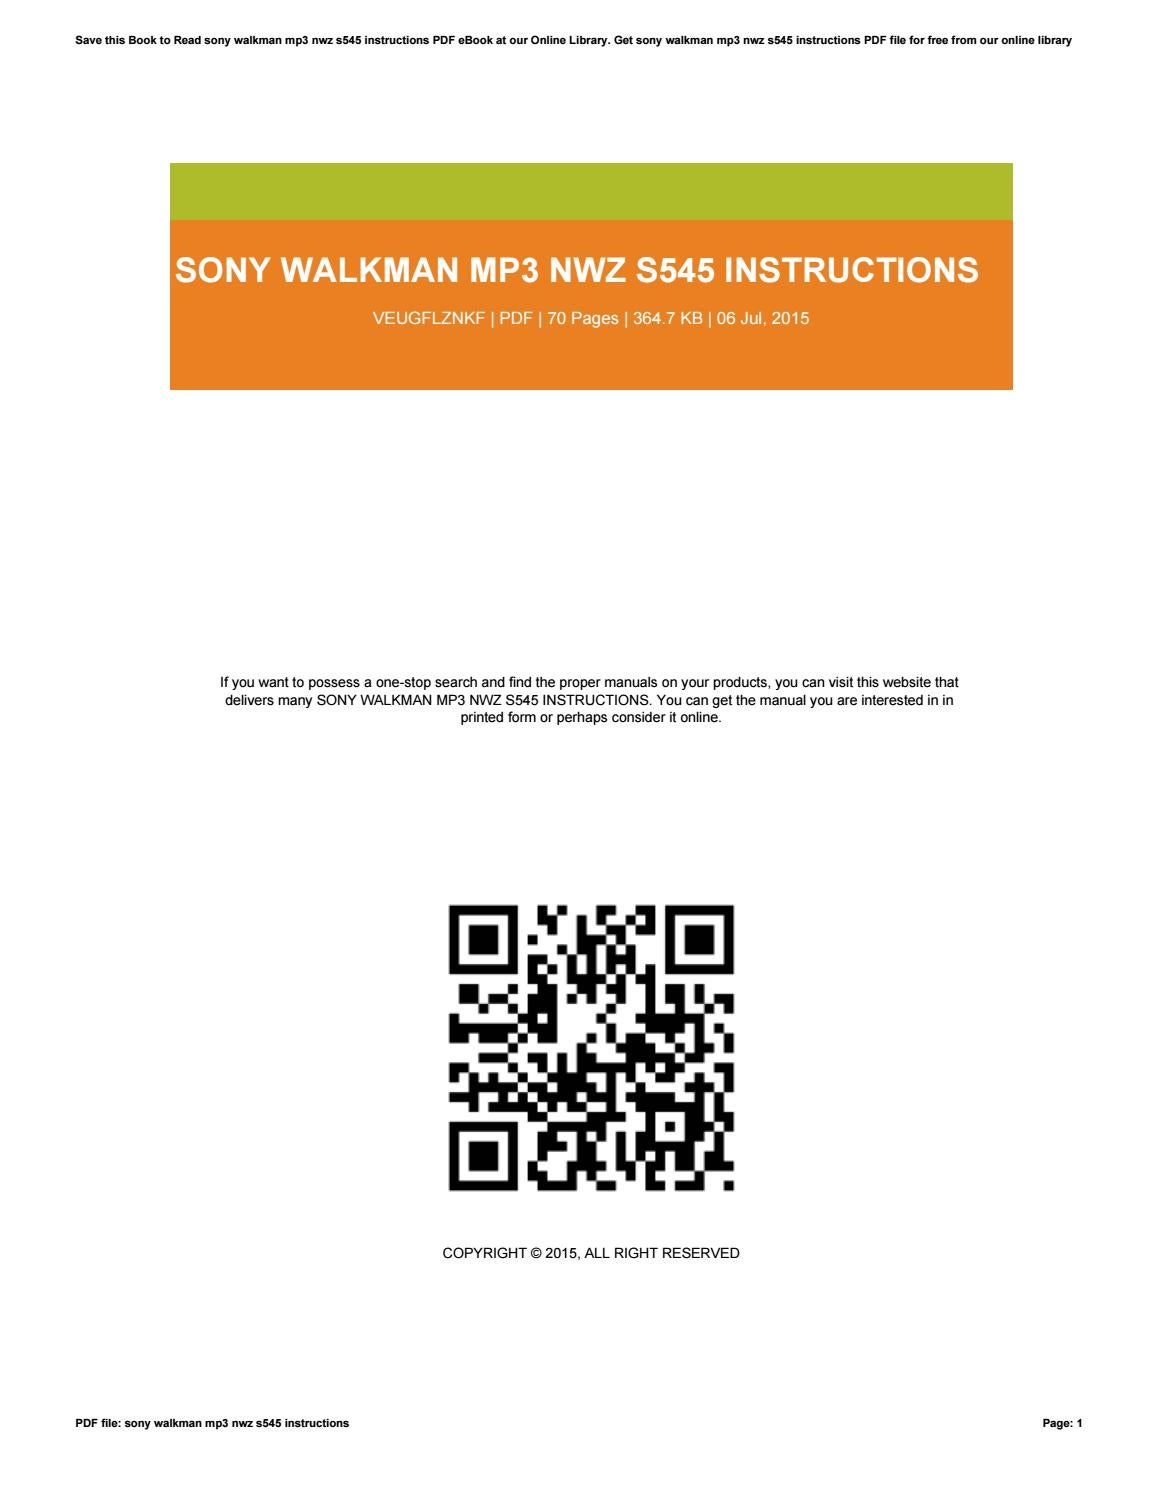 sony walkman mp3 instructions